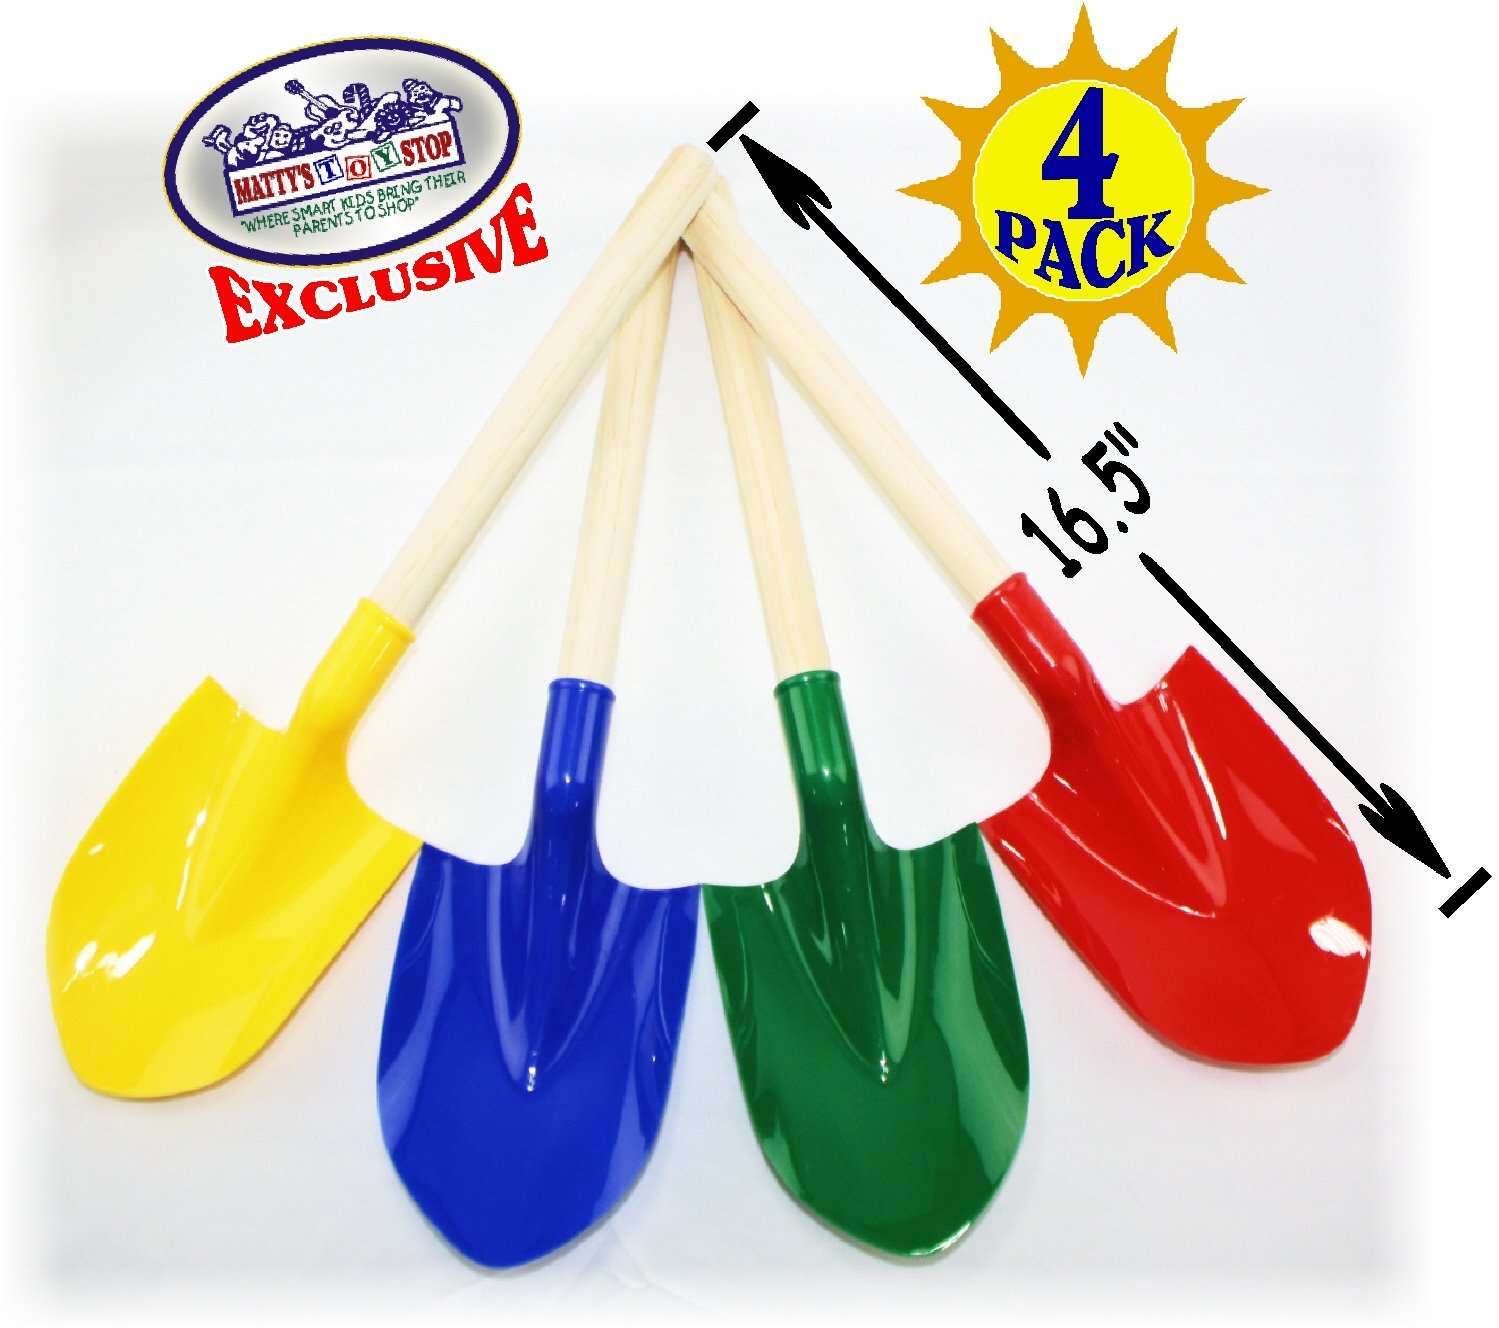 Matty's Toy Stop 16.5'' Wooden Mini Sand Shovels for Kids with Plastic Spade (Red, Blue, Green & Yellow) Complete Gift Set Party Bundle - 4 Pack